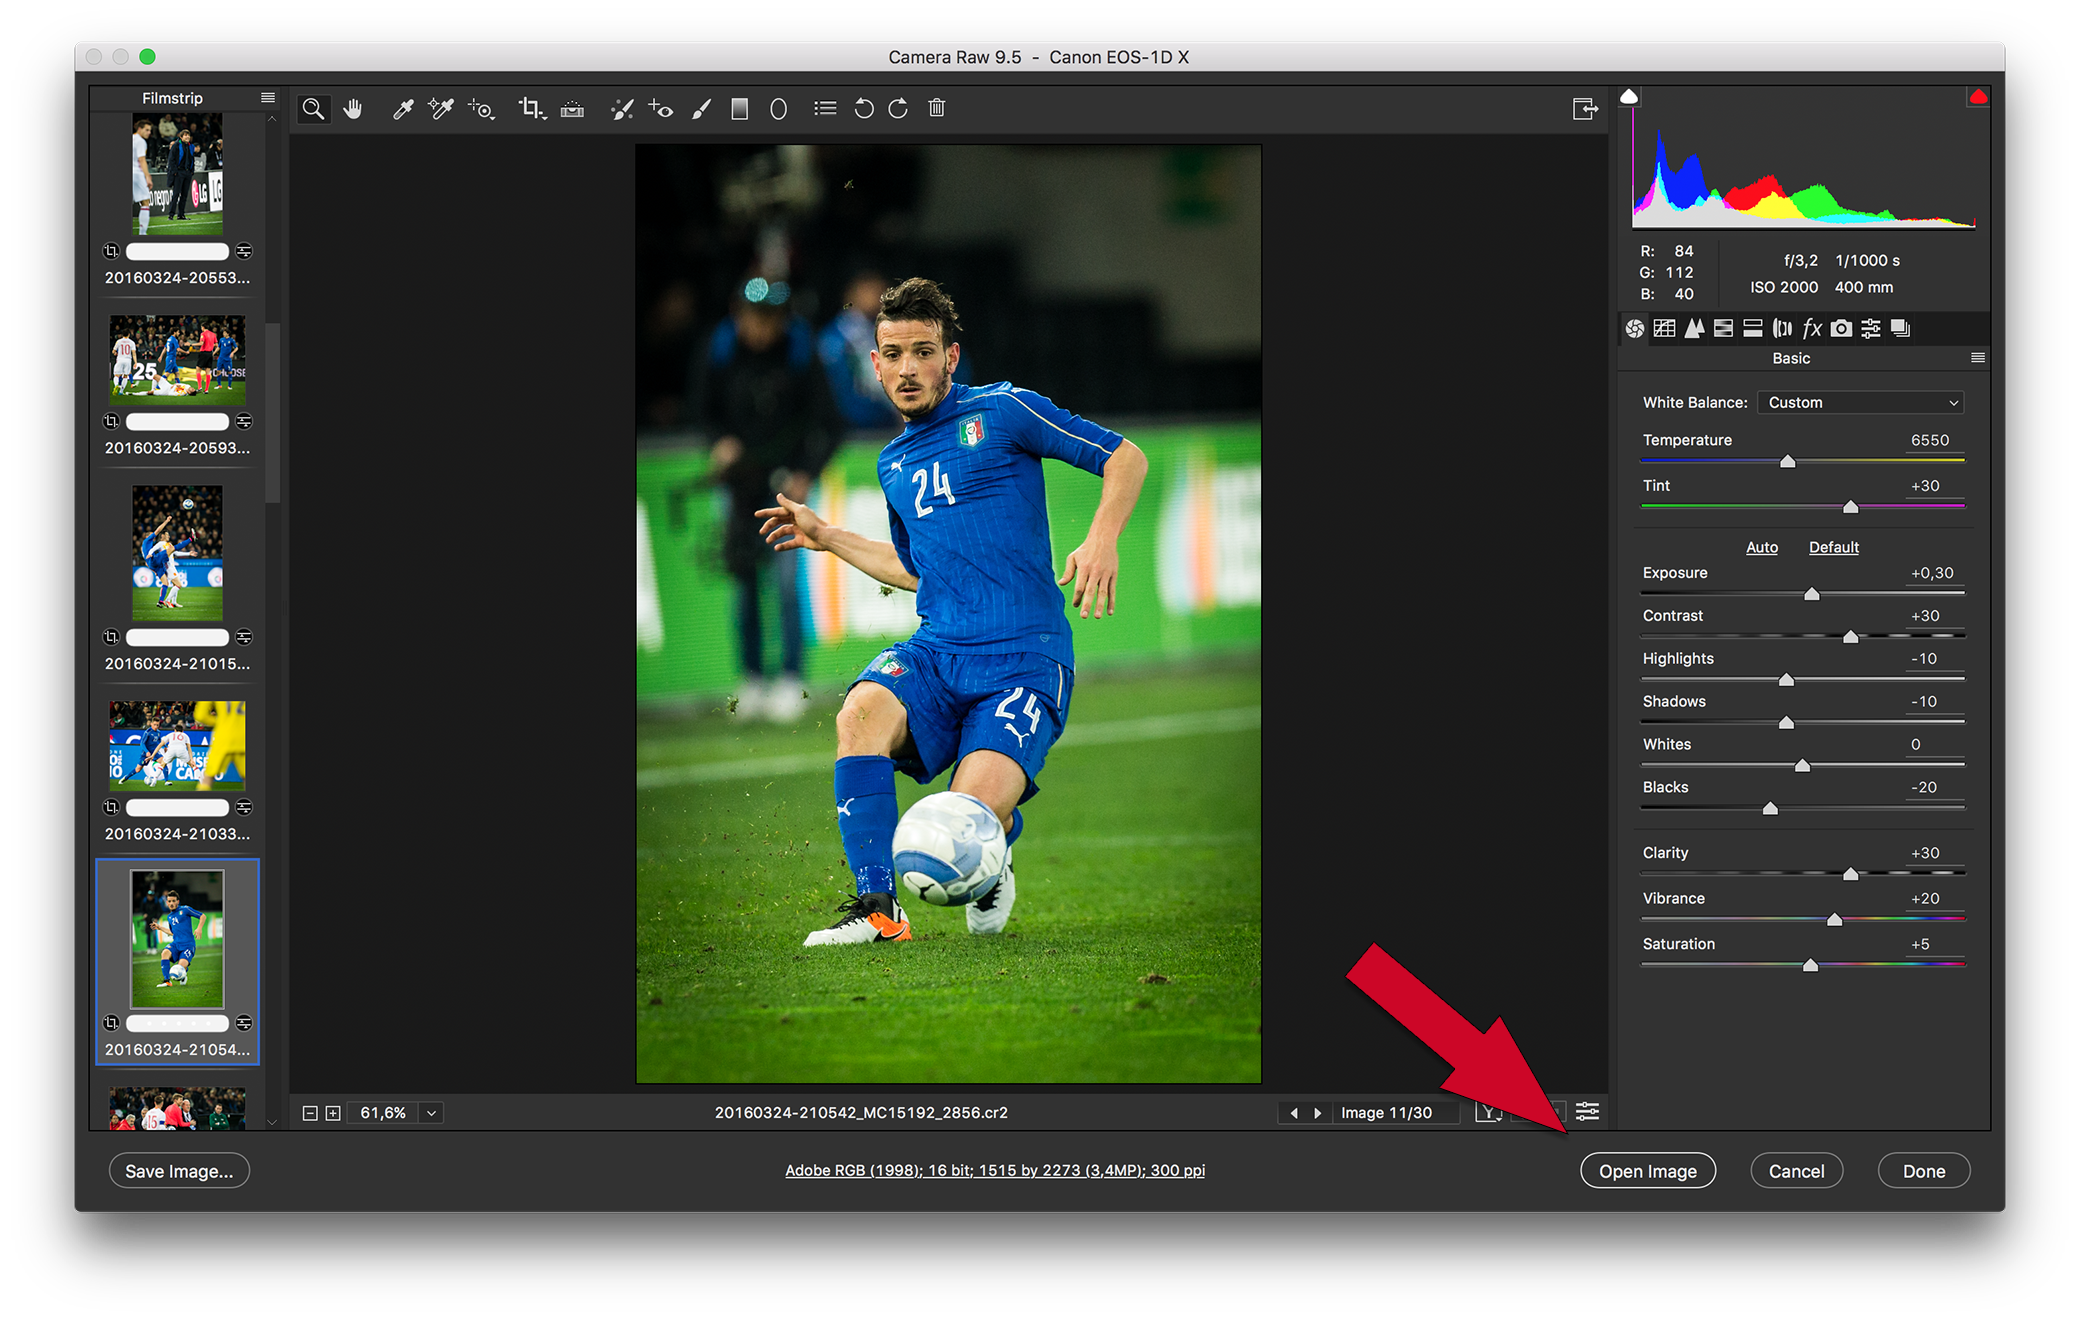 Open Image button in the Adobe Camera RAW application